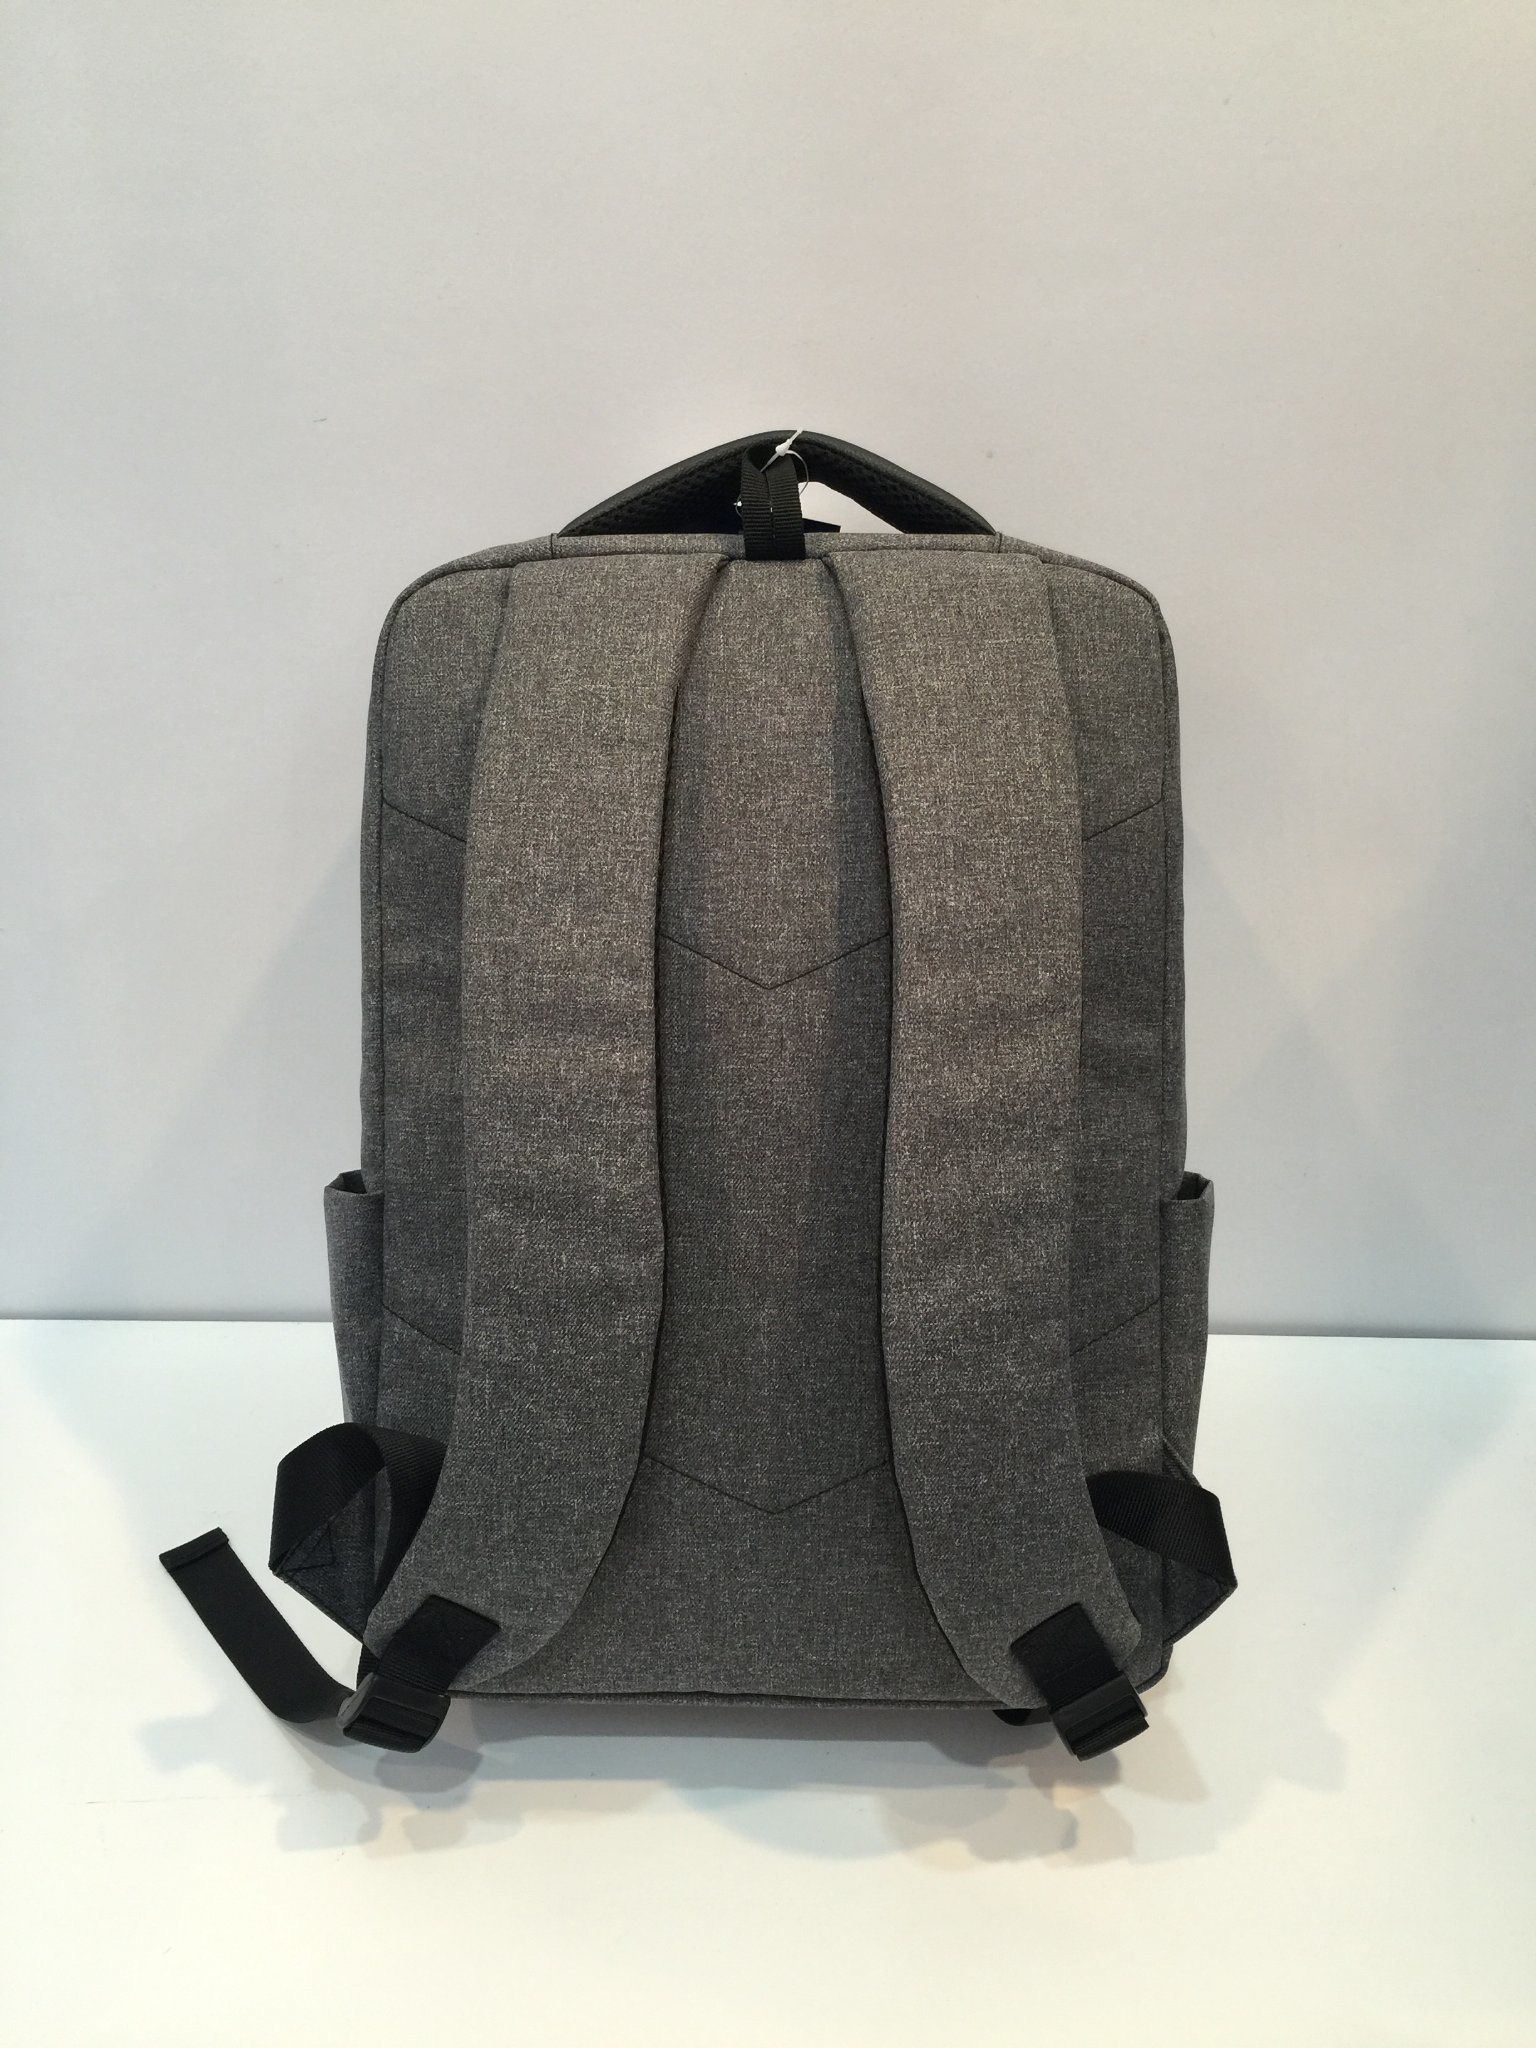 Snowflake Cloth Laptop Shouder Bag for Work/School/Travling